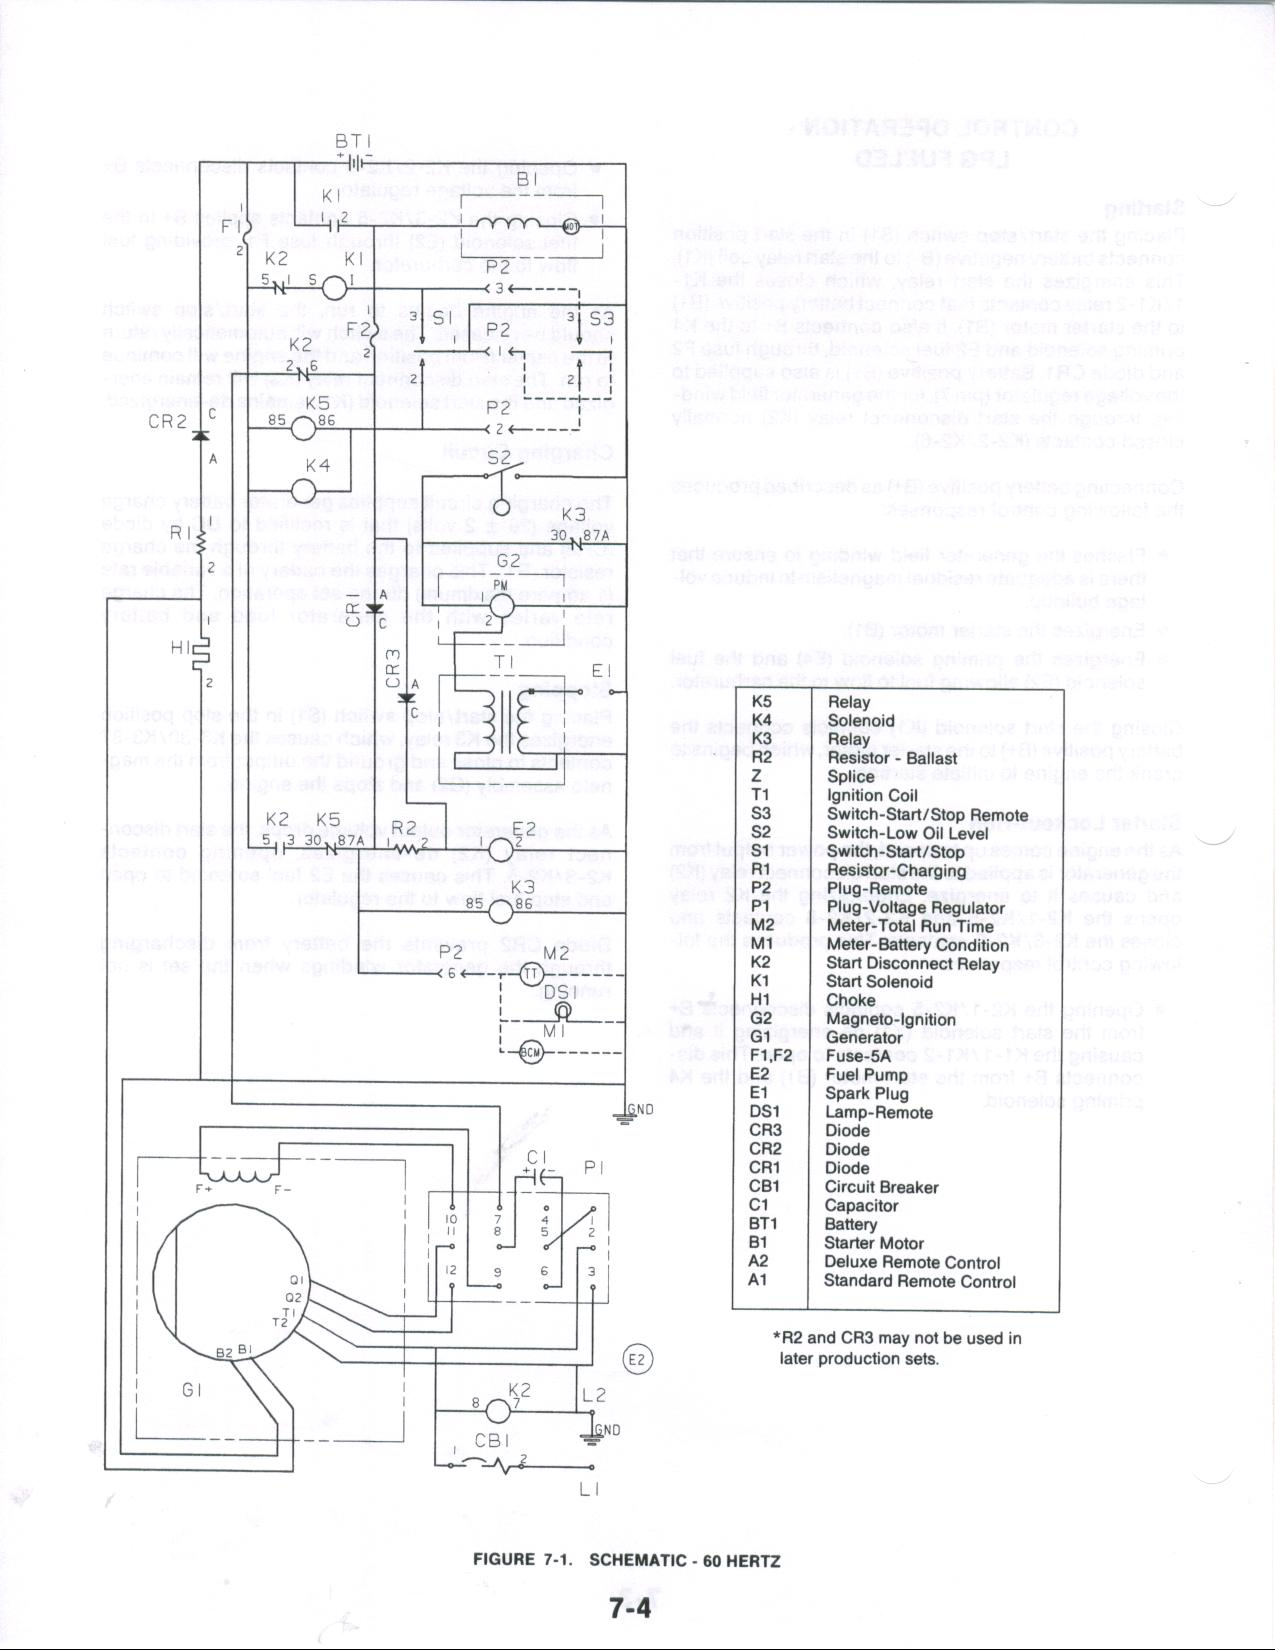 [DIAGRAM_34OR]  Onan Generator Wiring Diagram | Onan Small Engine Wiring Diagram |  | prsteyer - blogger